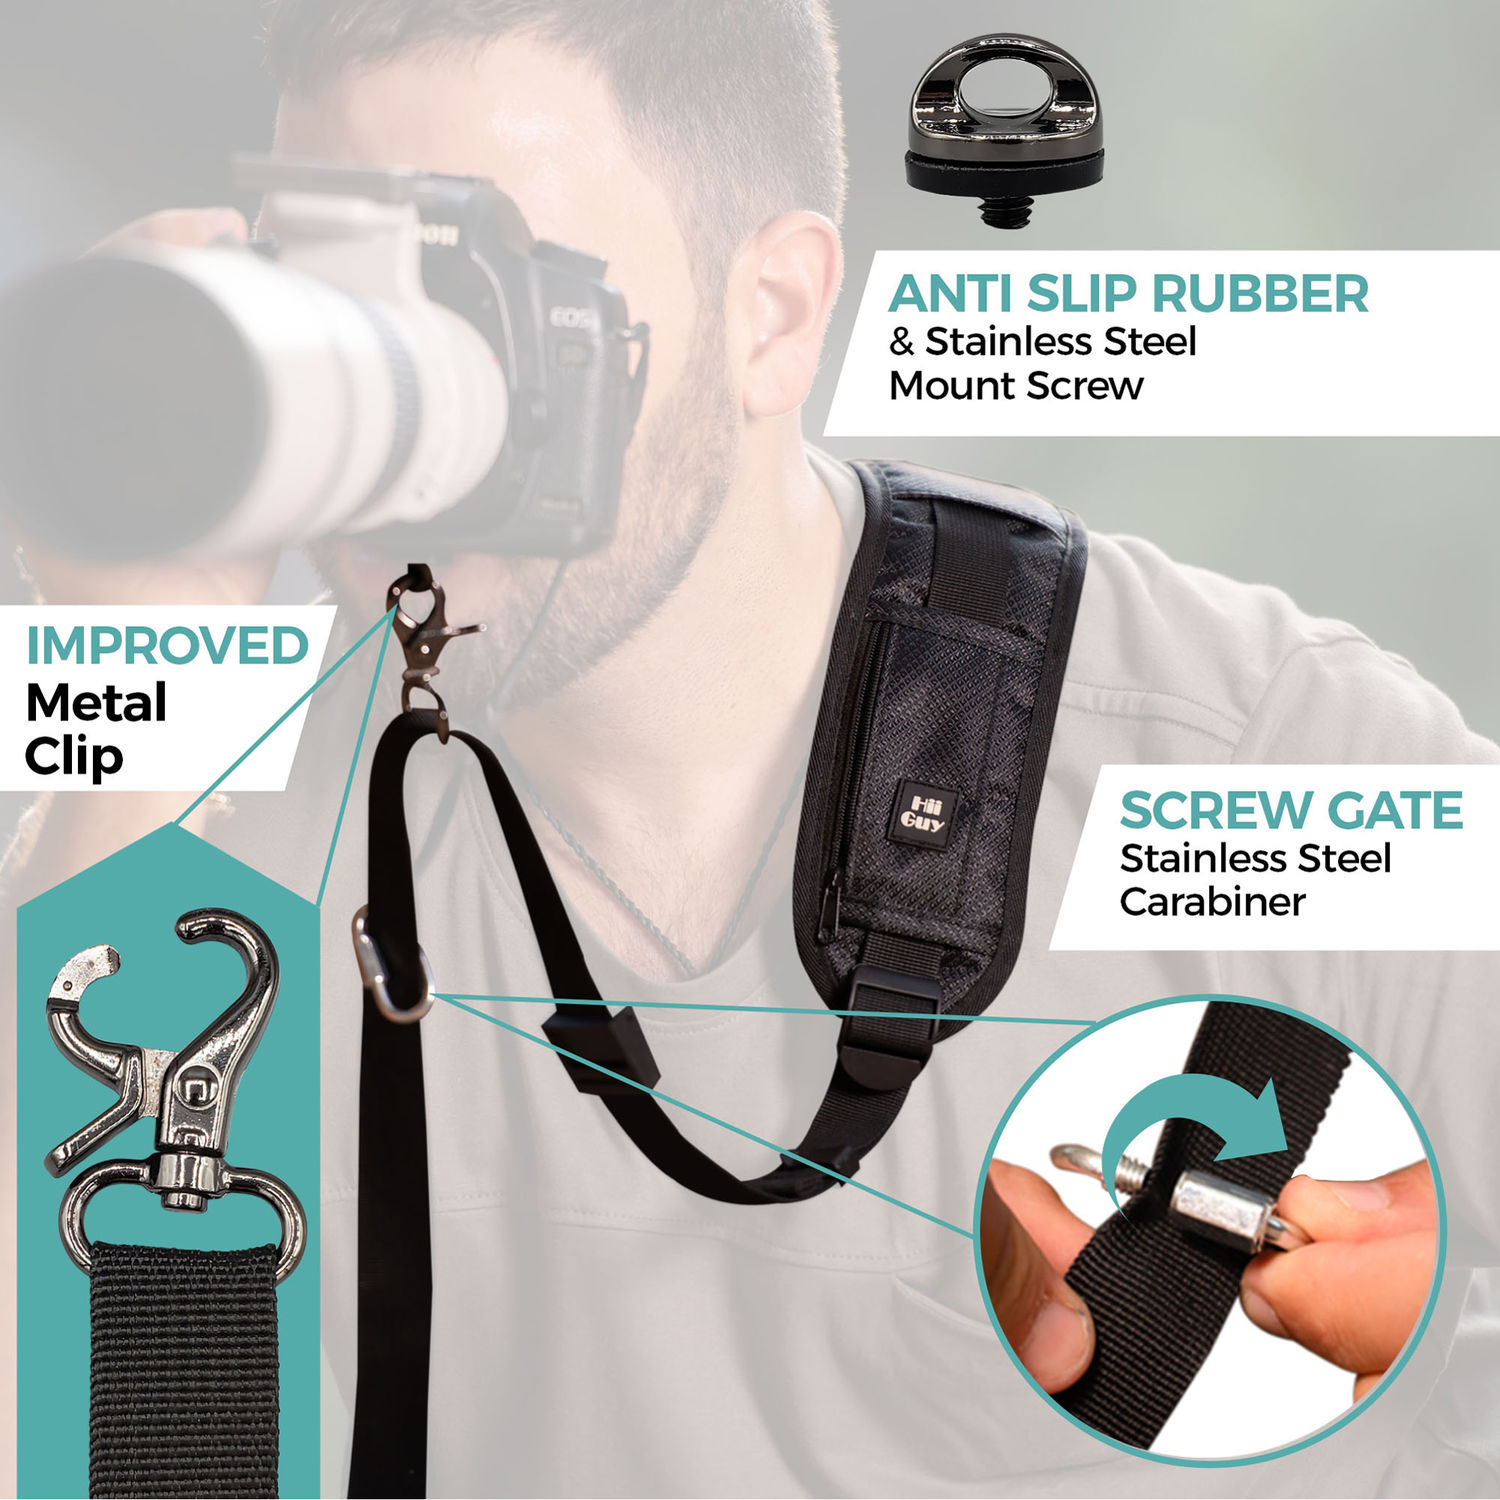 Light Weight and Well Padded Camera Strap Galaxy Camera Strap Code 00156 Cosmos with Planet Camera Strap Dark Purple DSLR//SLR Camera Strap Durable